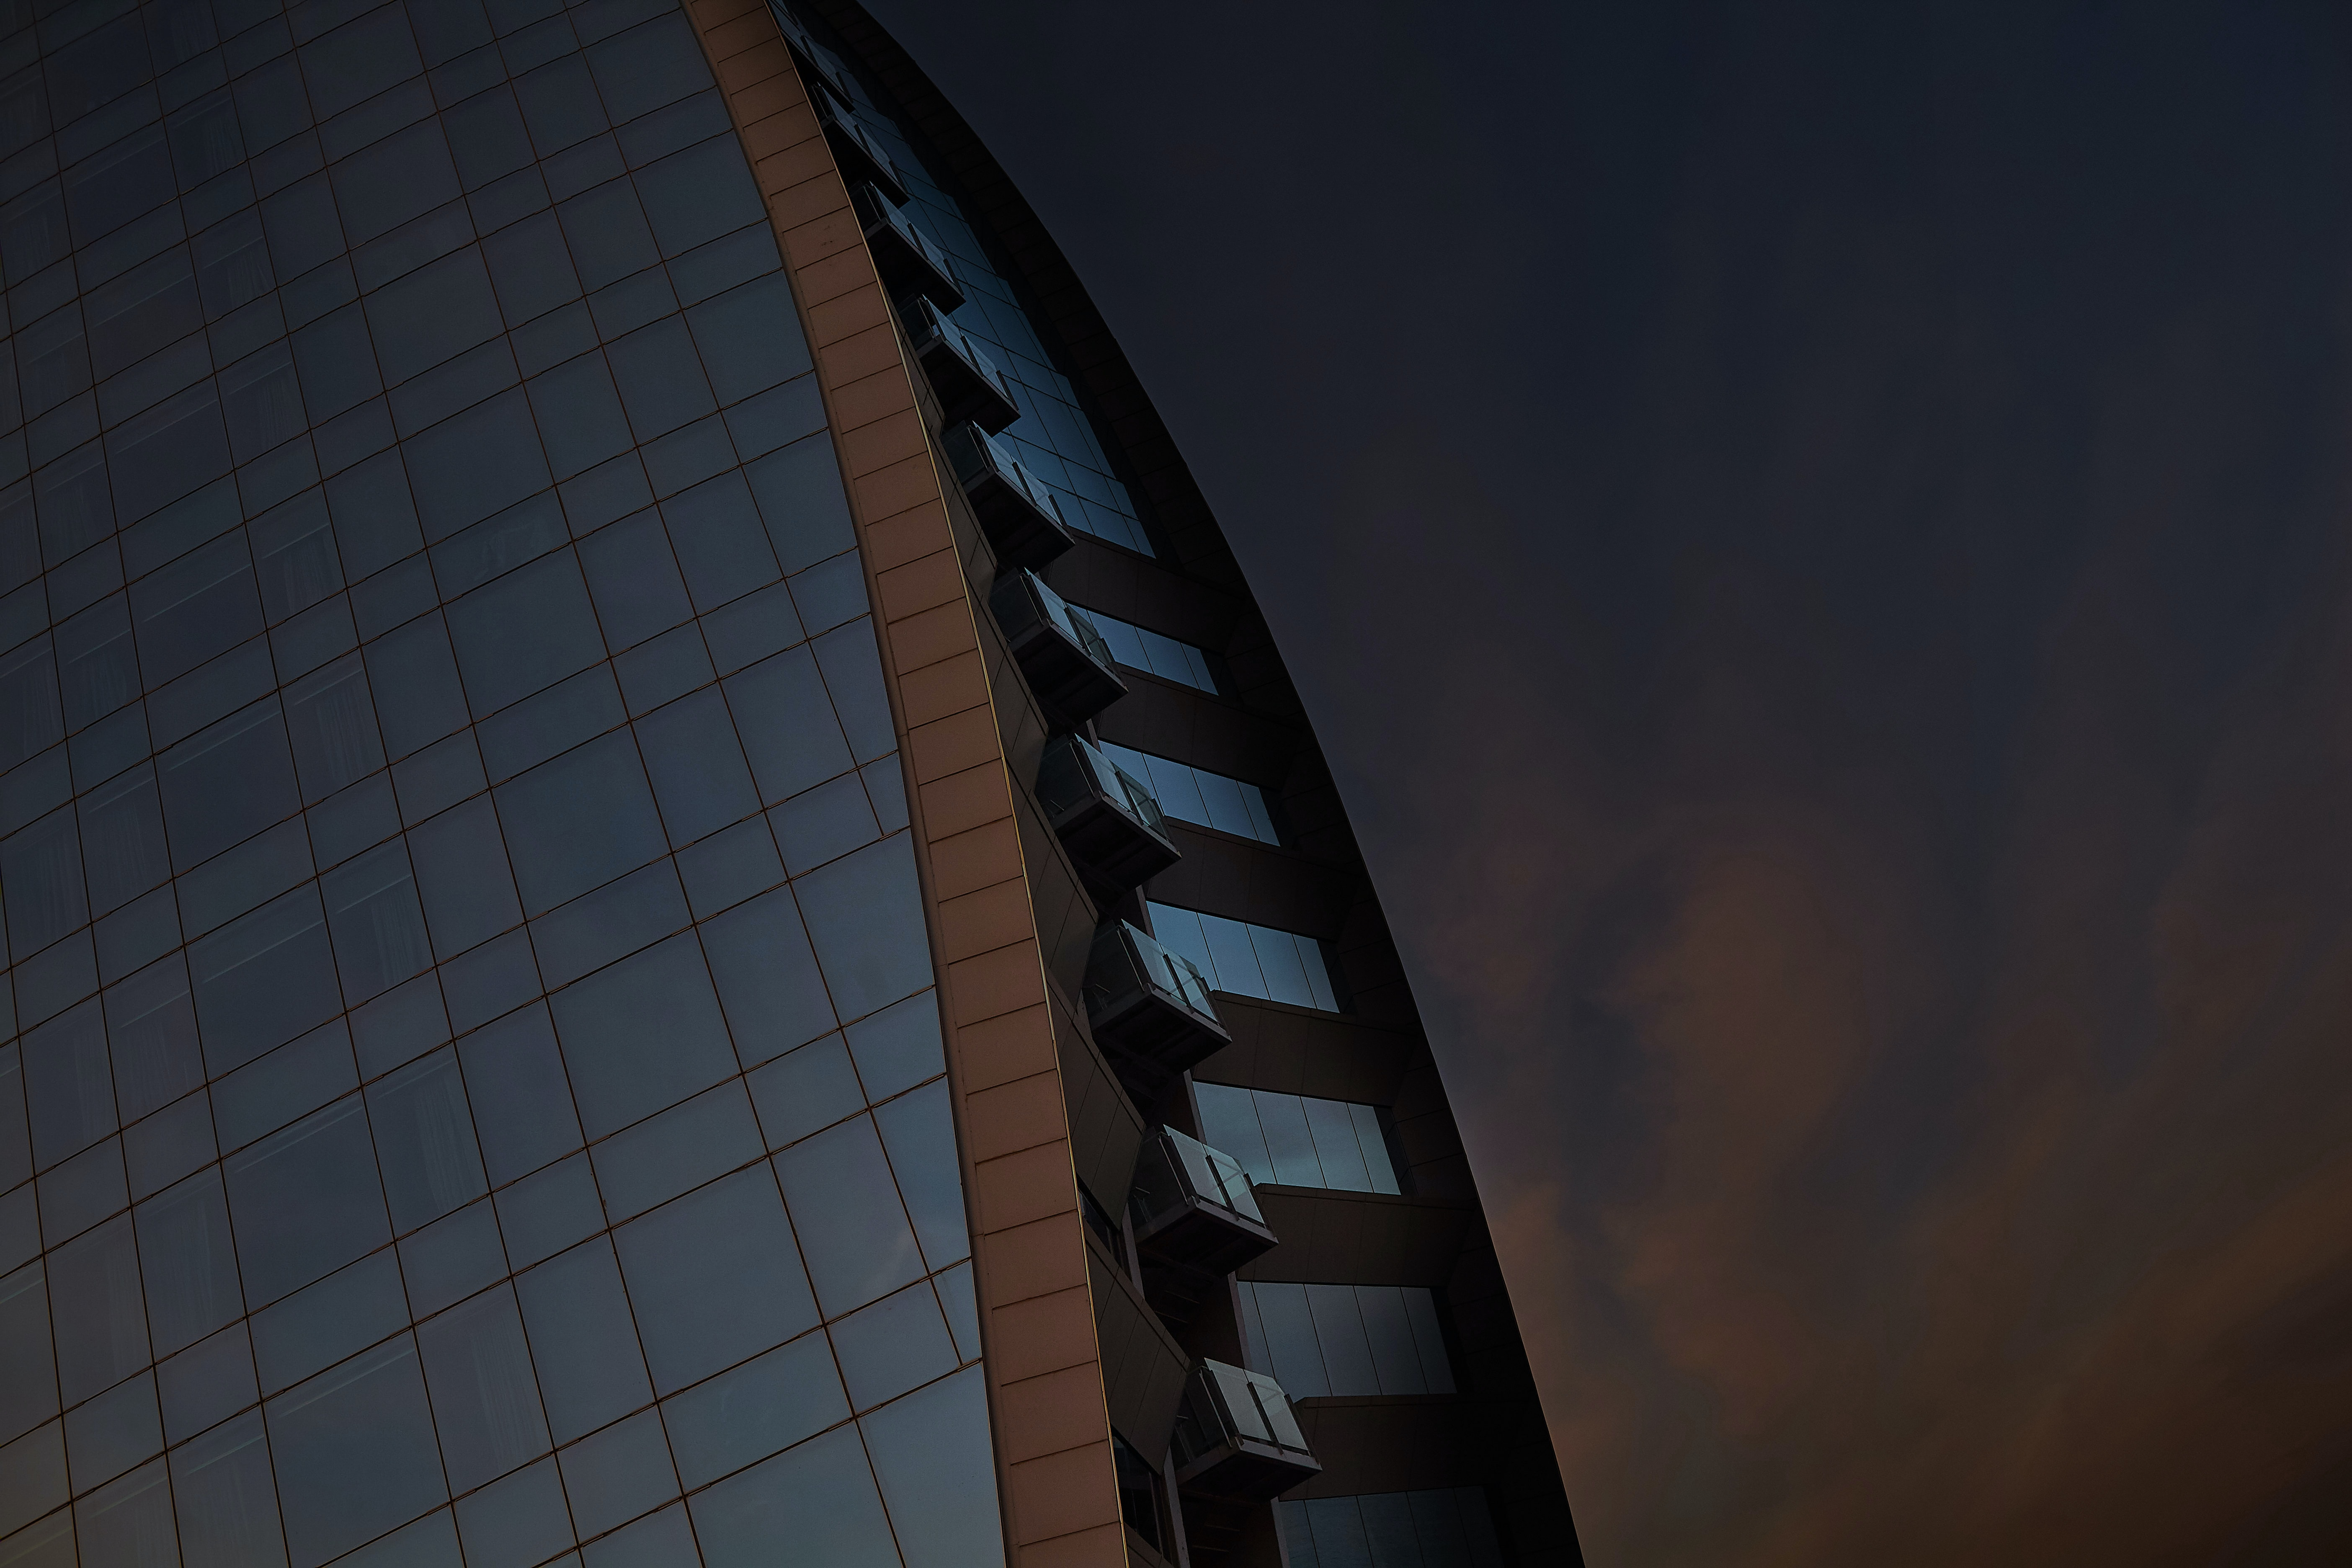 low angel photography of building